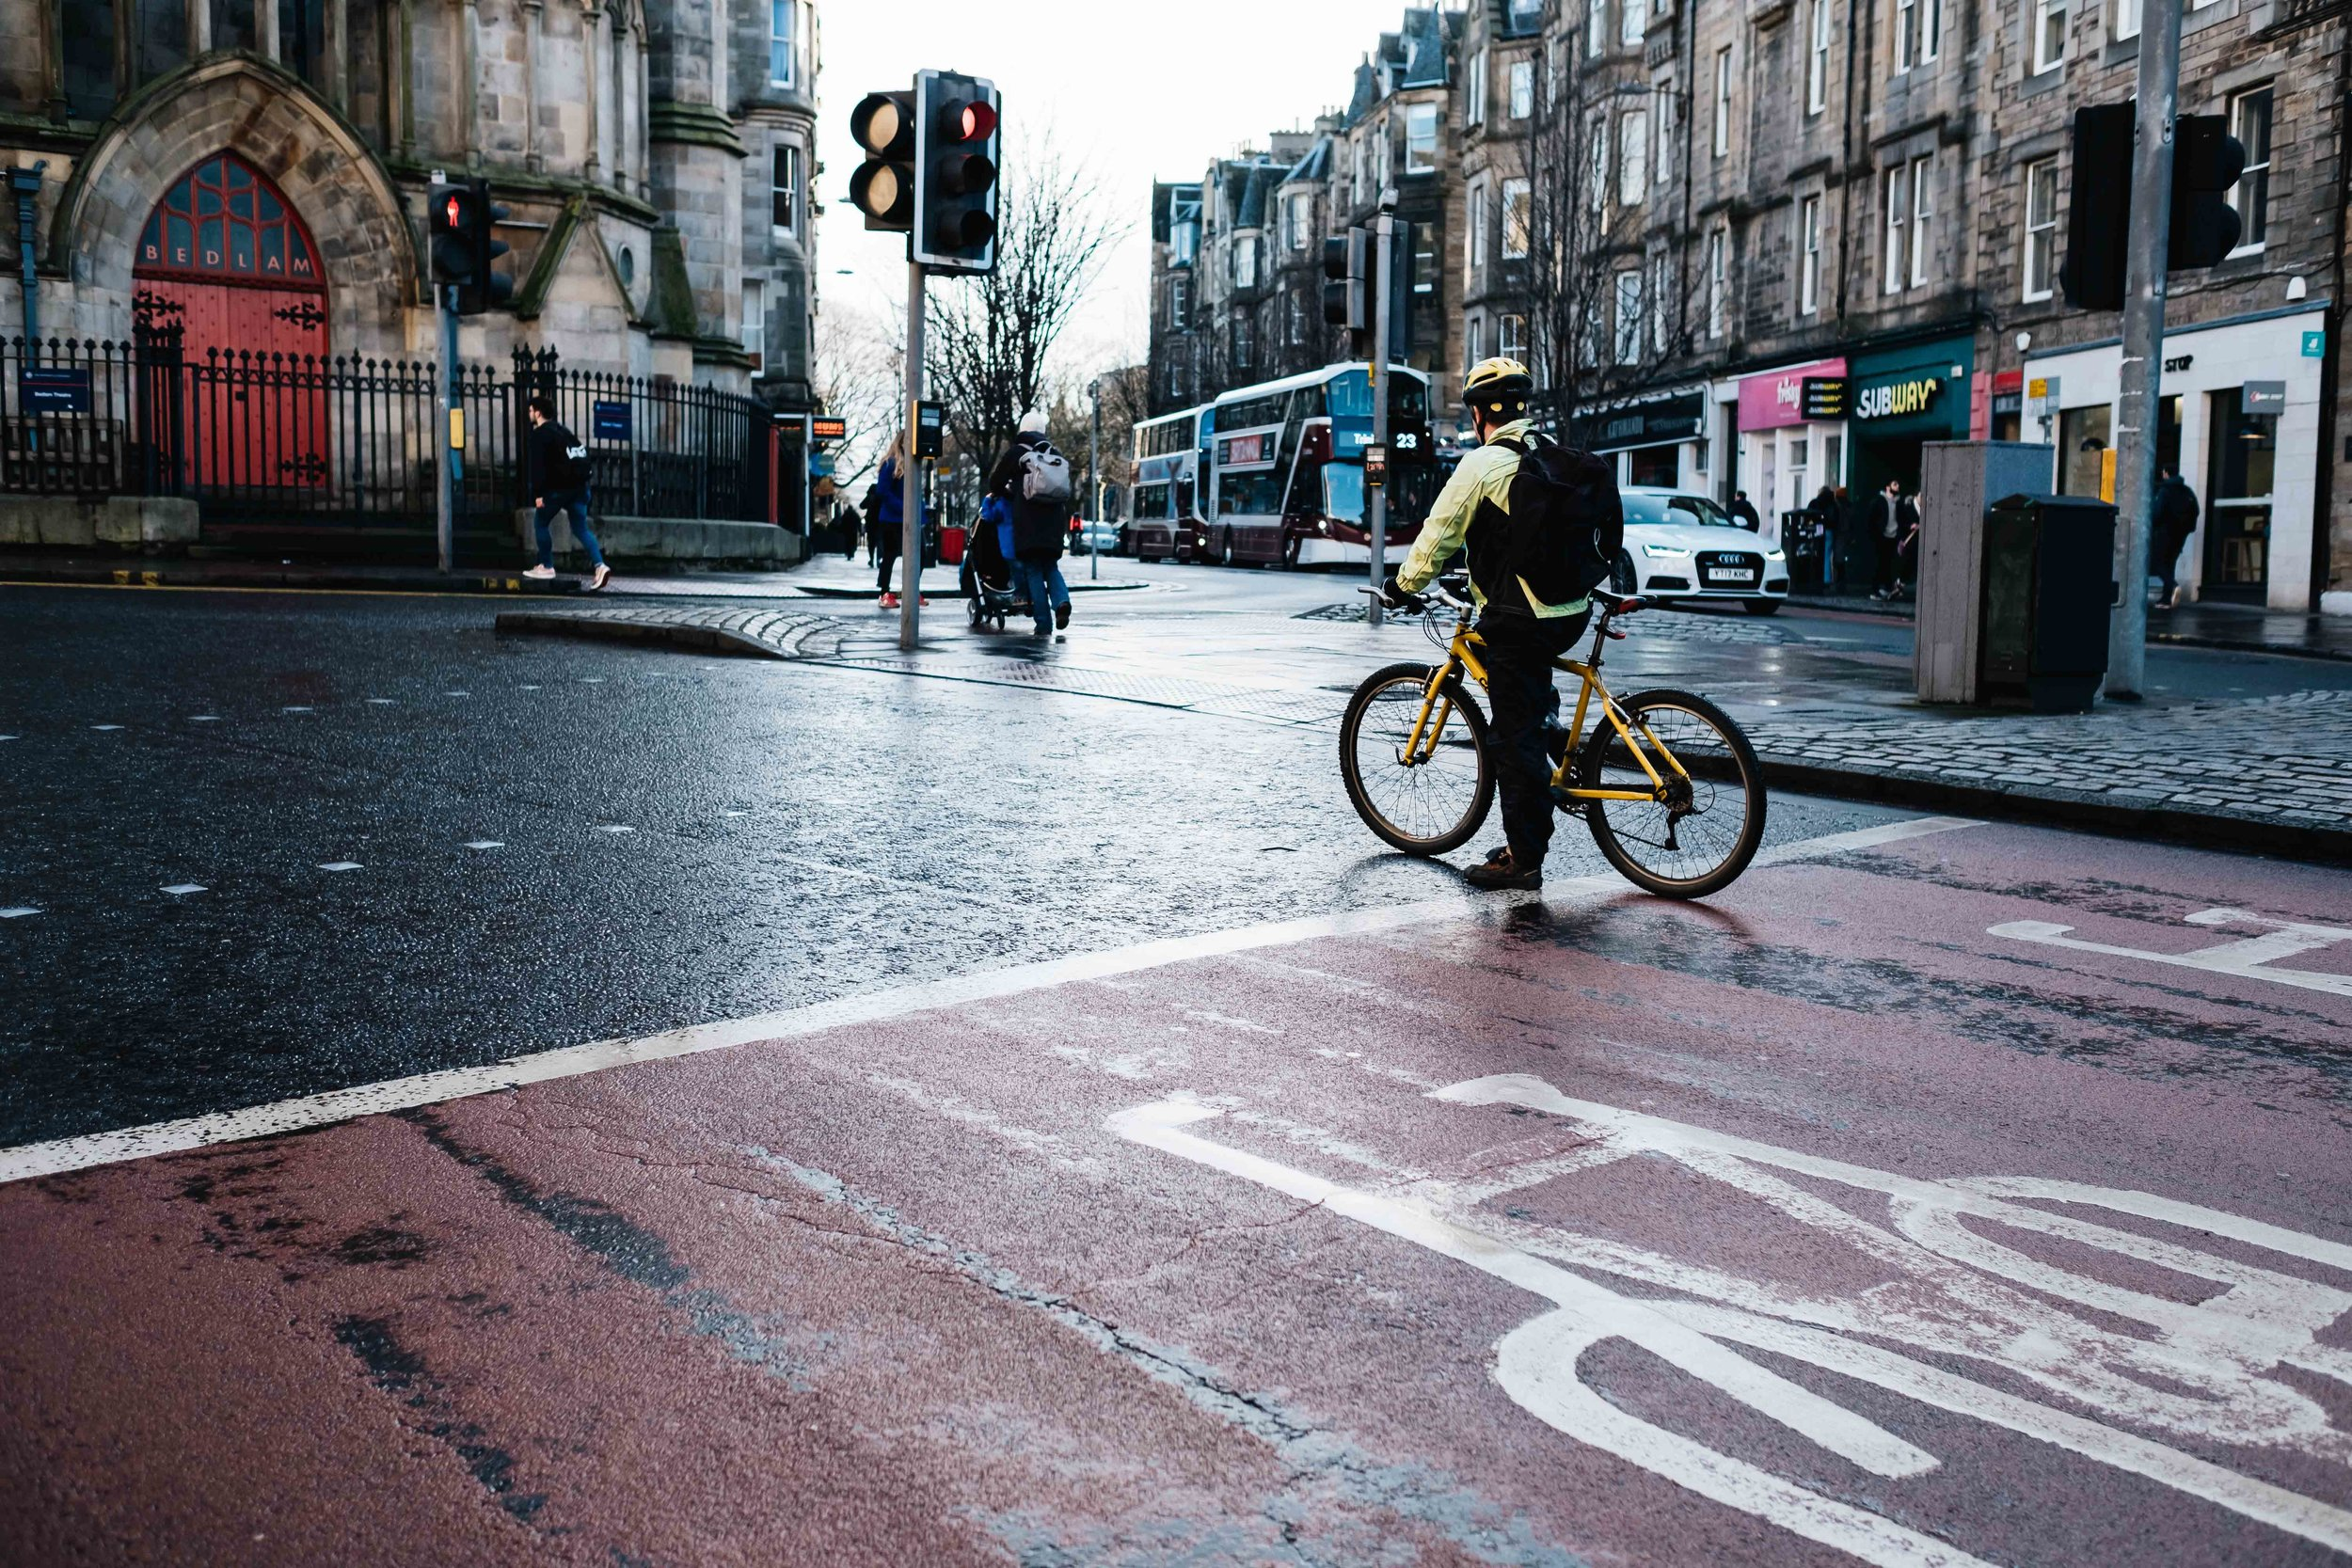 a cyclist is stopped at a red light in a busy Edinburgh street